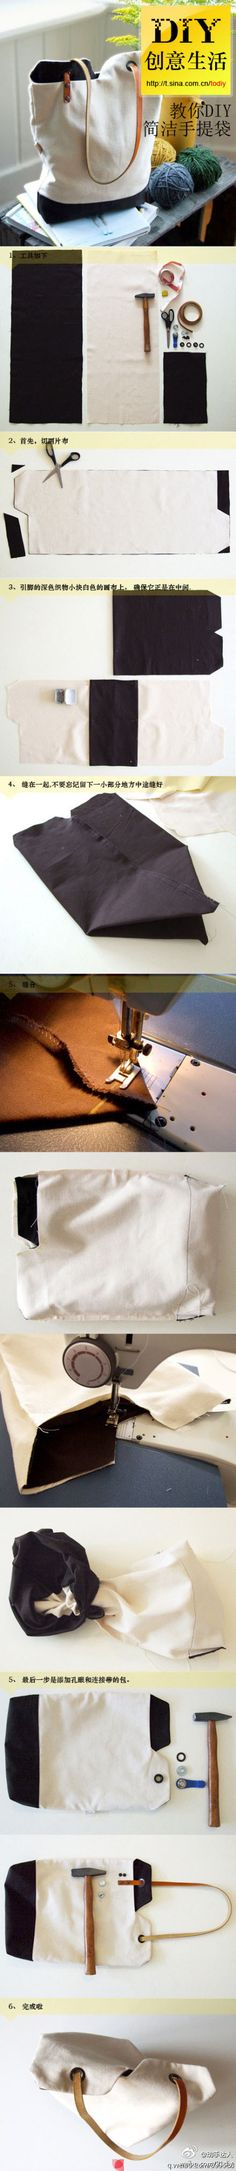 Diy � Easy bag